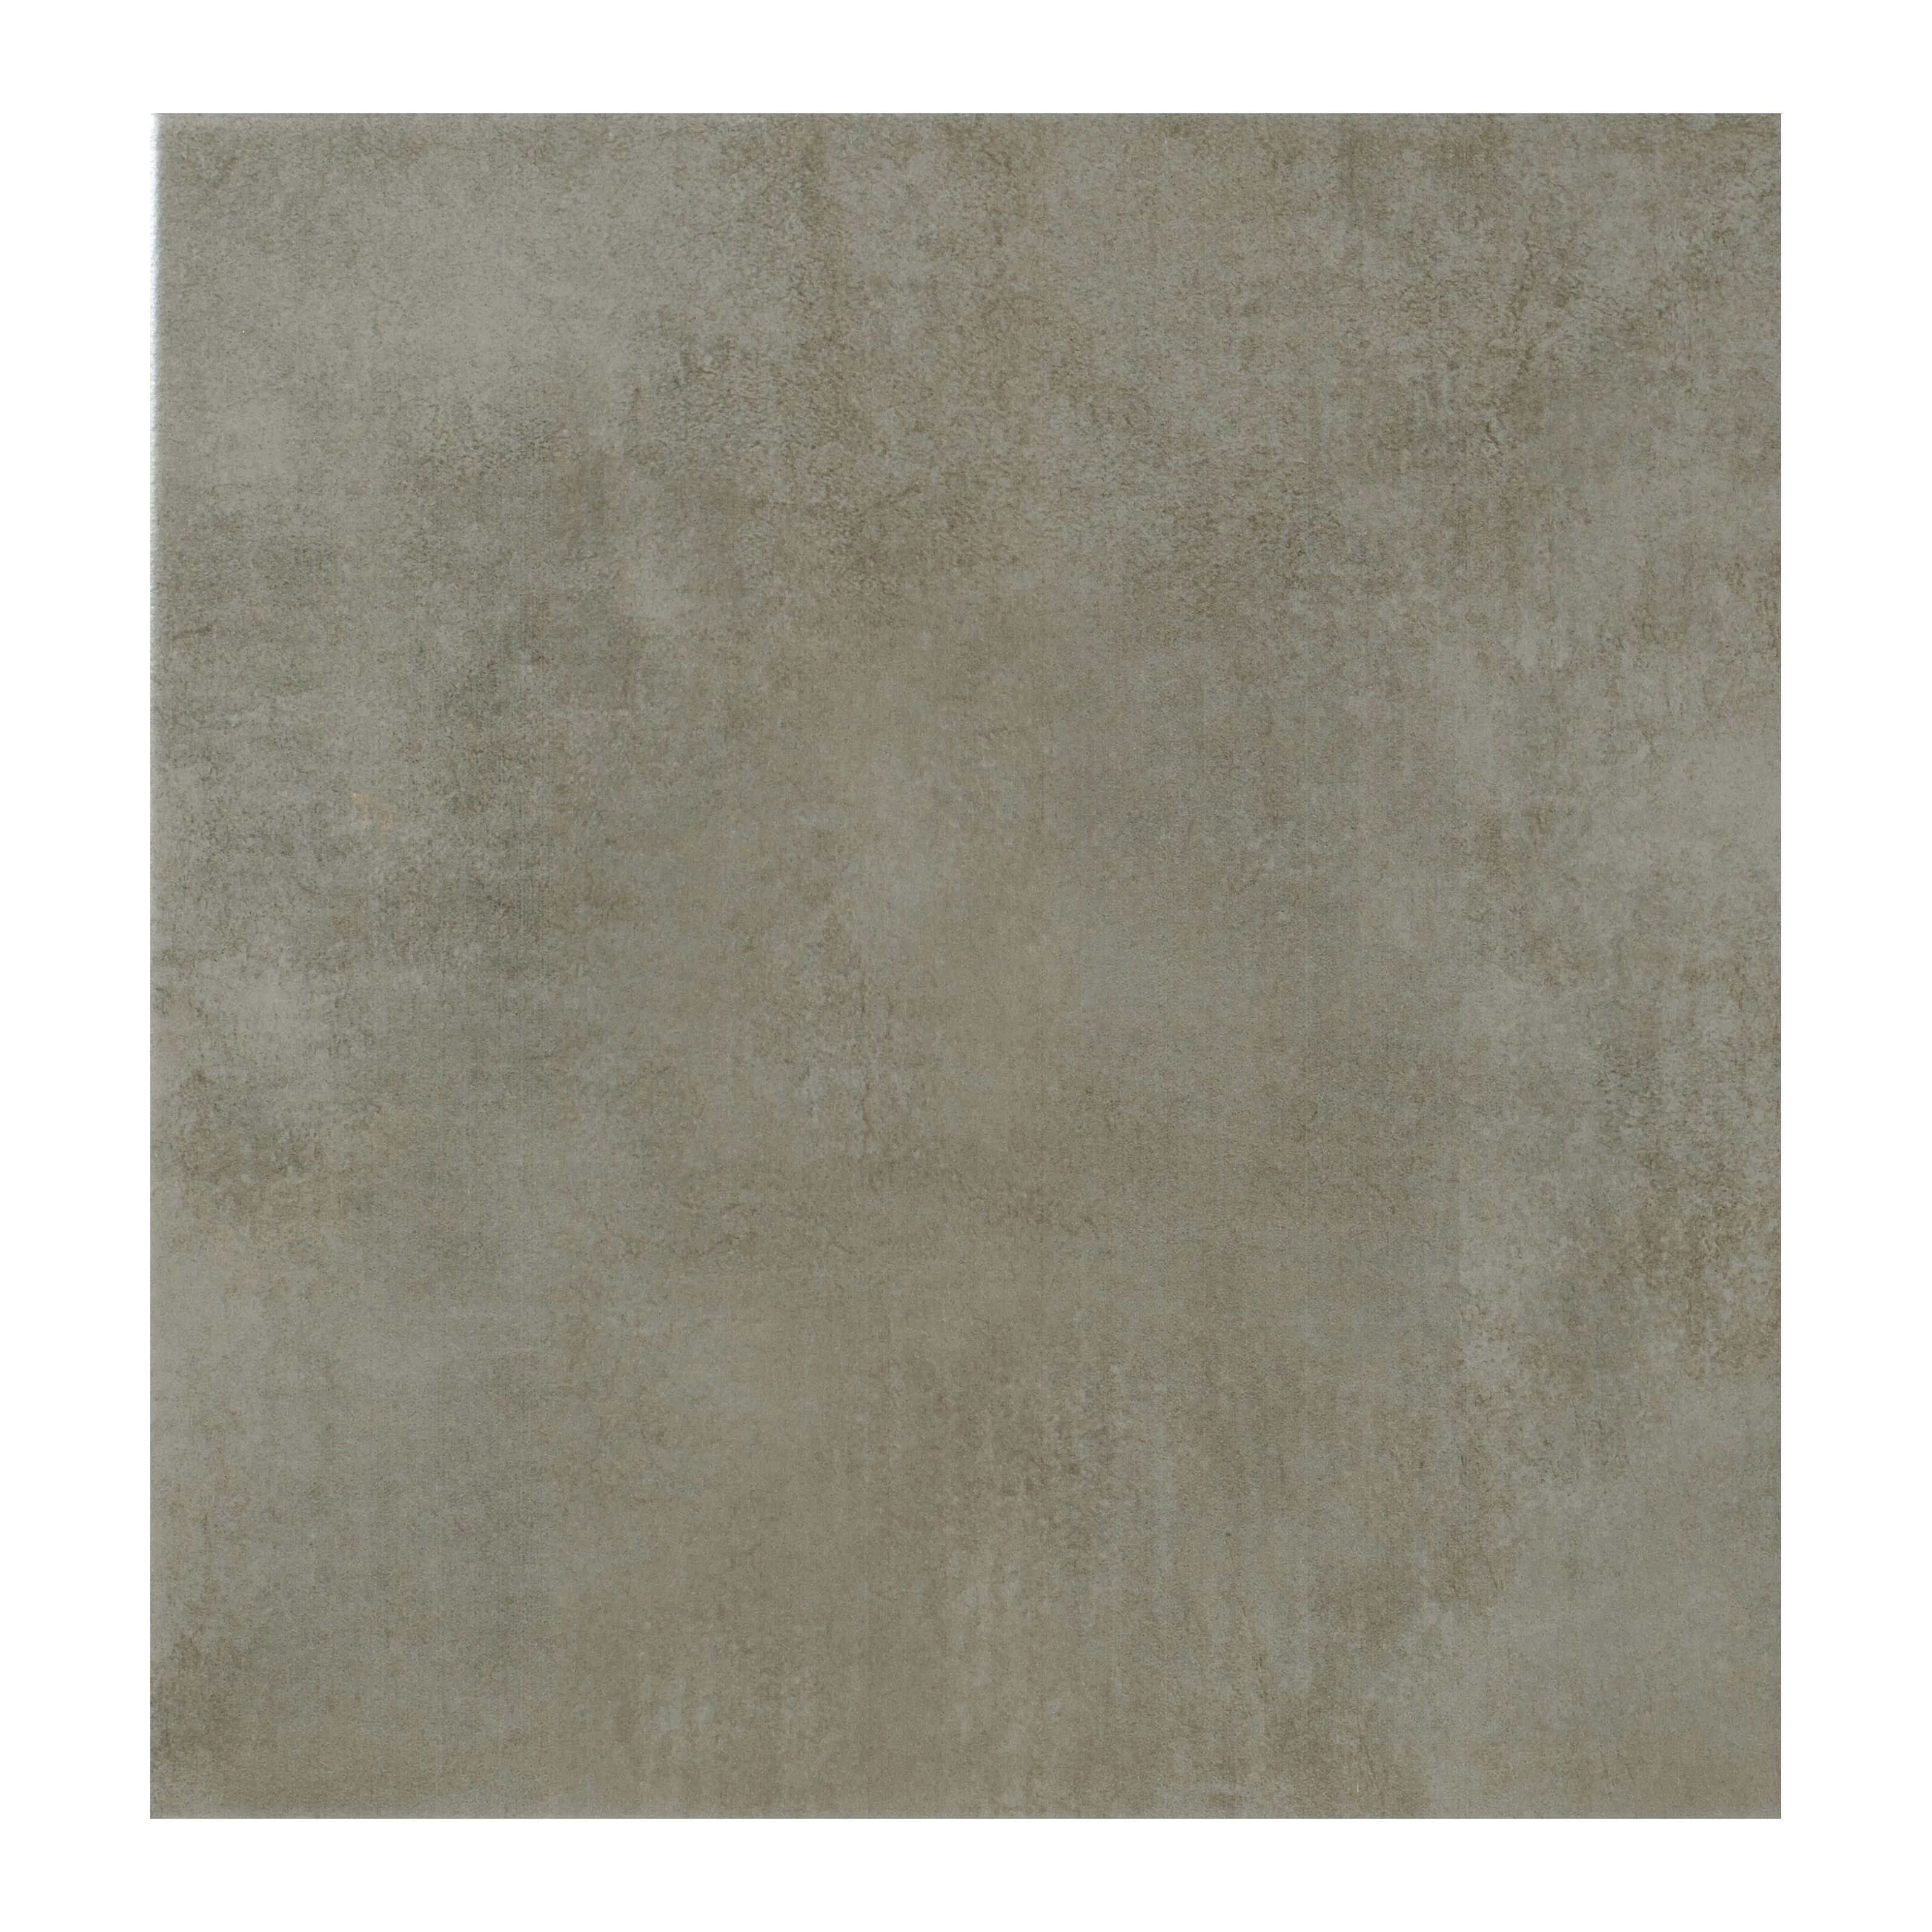 Lombardy smoke ceramic floor tile ideas for the kitchen lombardy smoke ceramic floor tile pack of bq for all your home and garden supplies and advice on all the latest diy trends doublecrazyfo Images